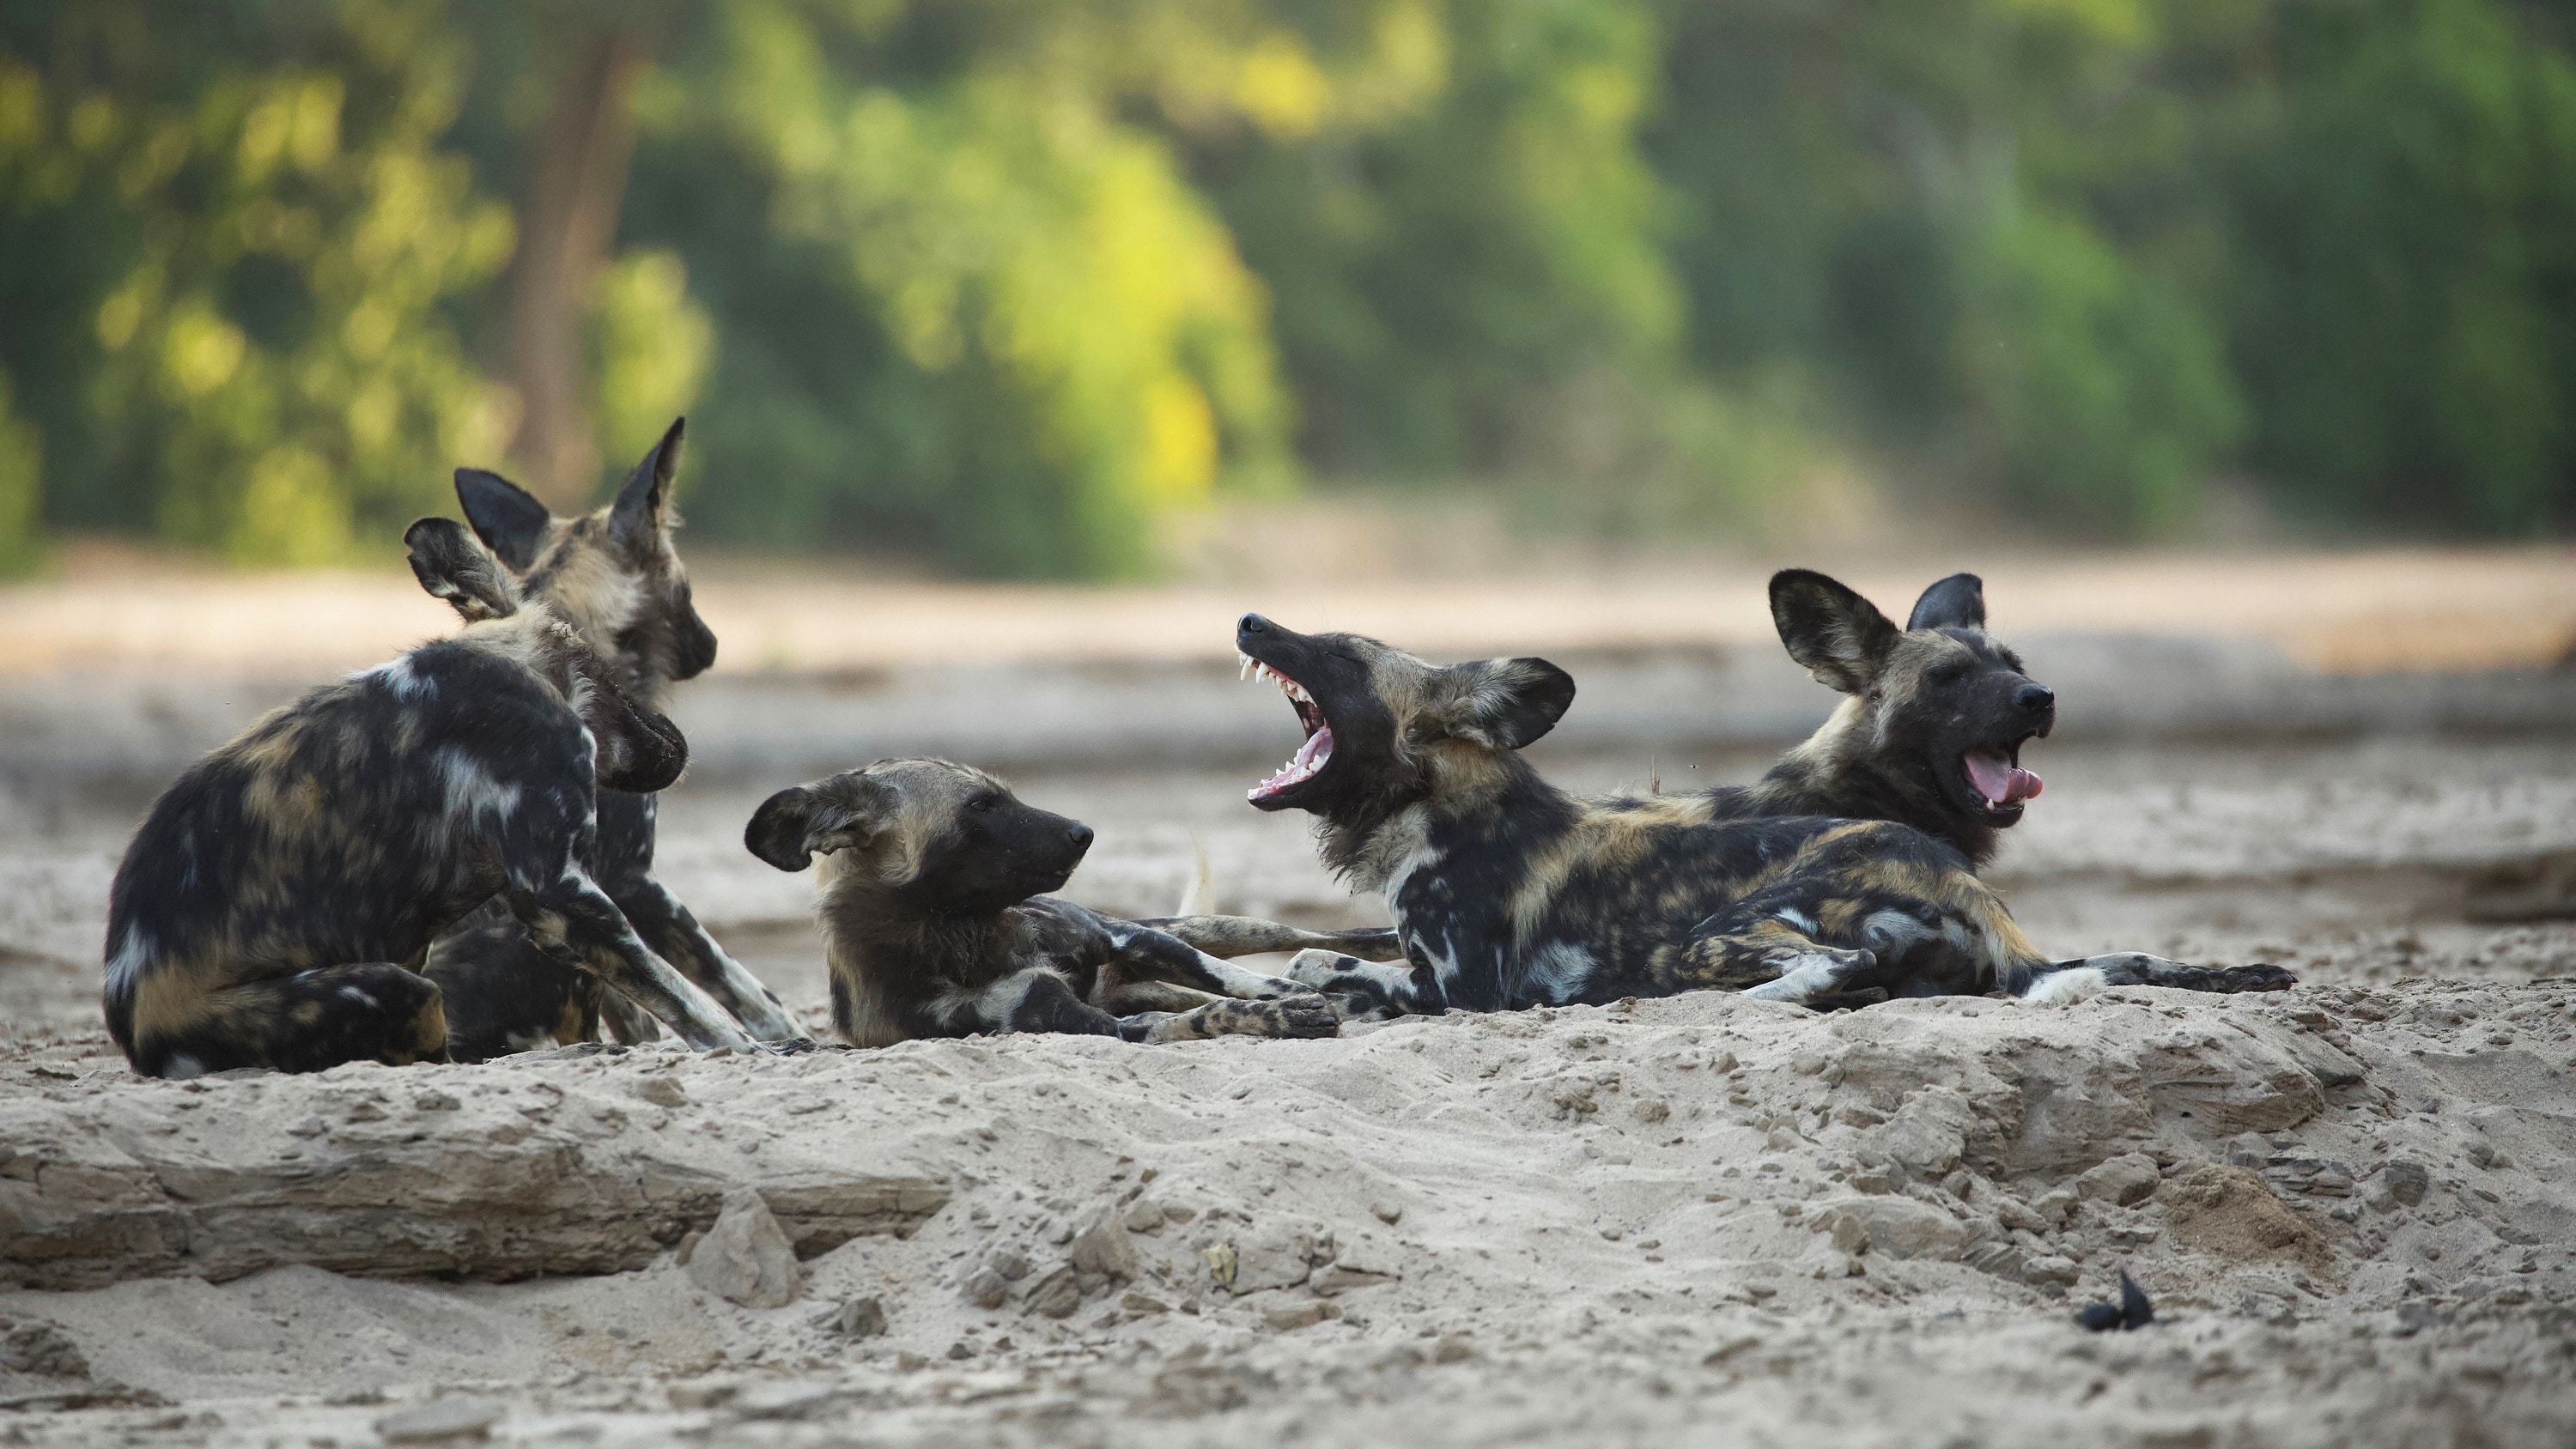 Members of the pack lie down together. (National Geographic for Disney+/Neil Fairlie)